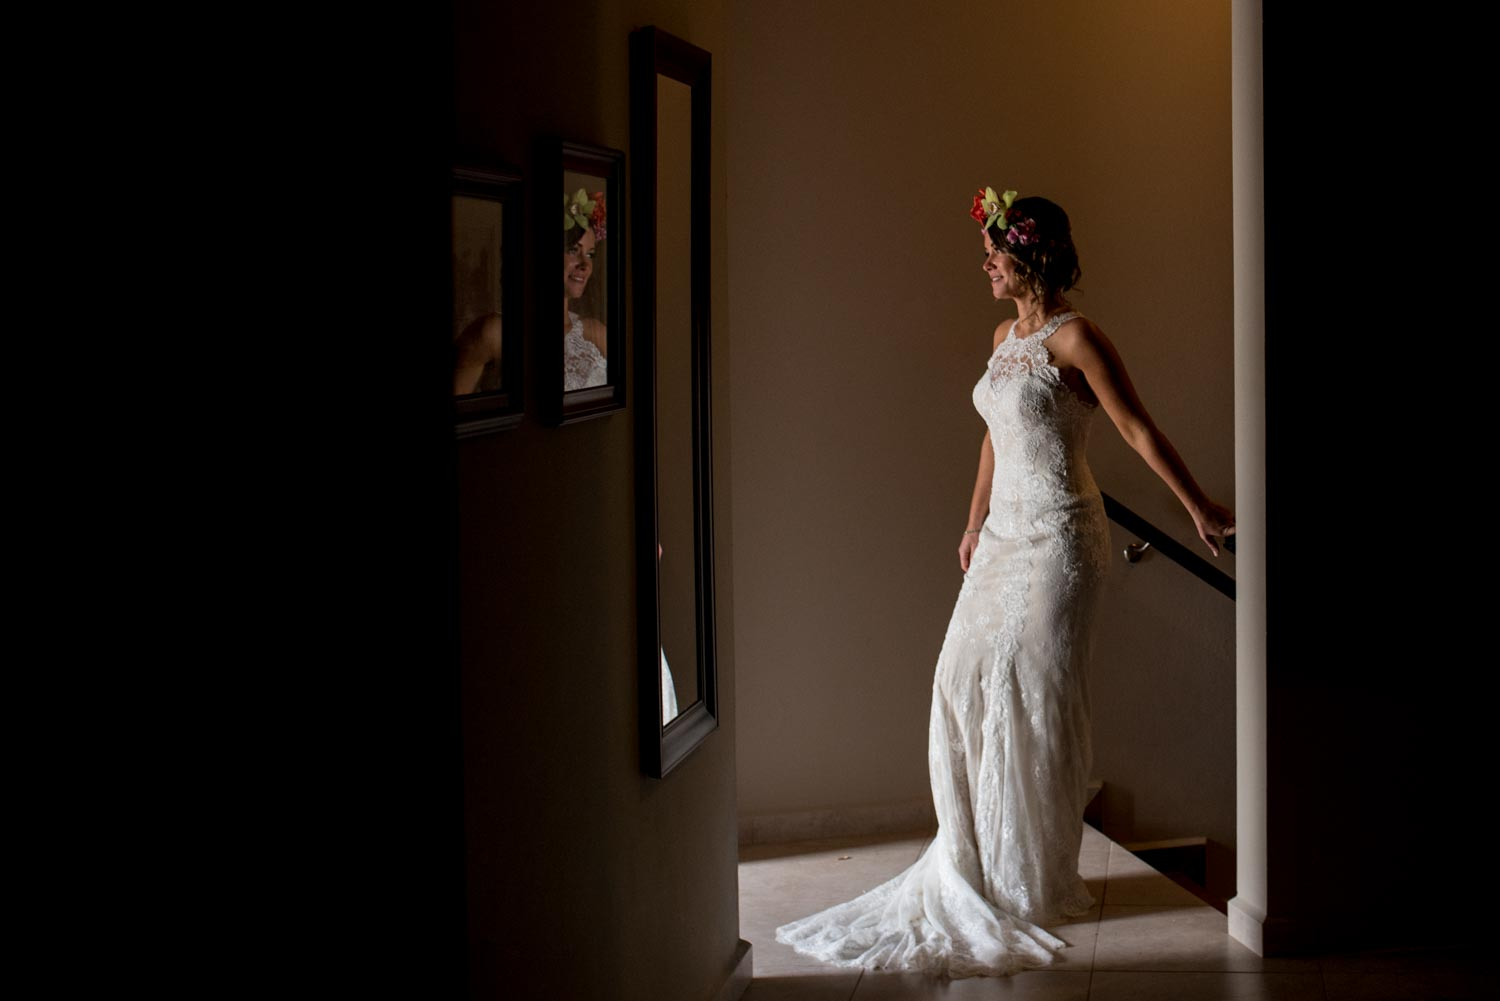 Bride standing posed in a hallway wearing a white wedding dress